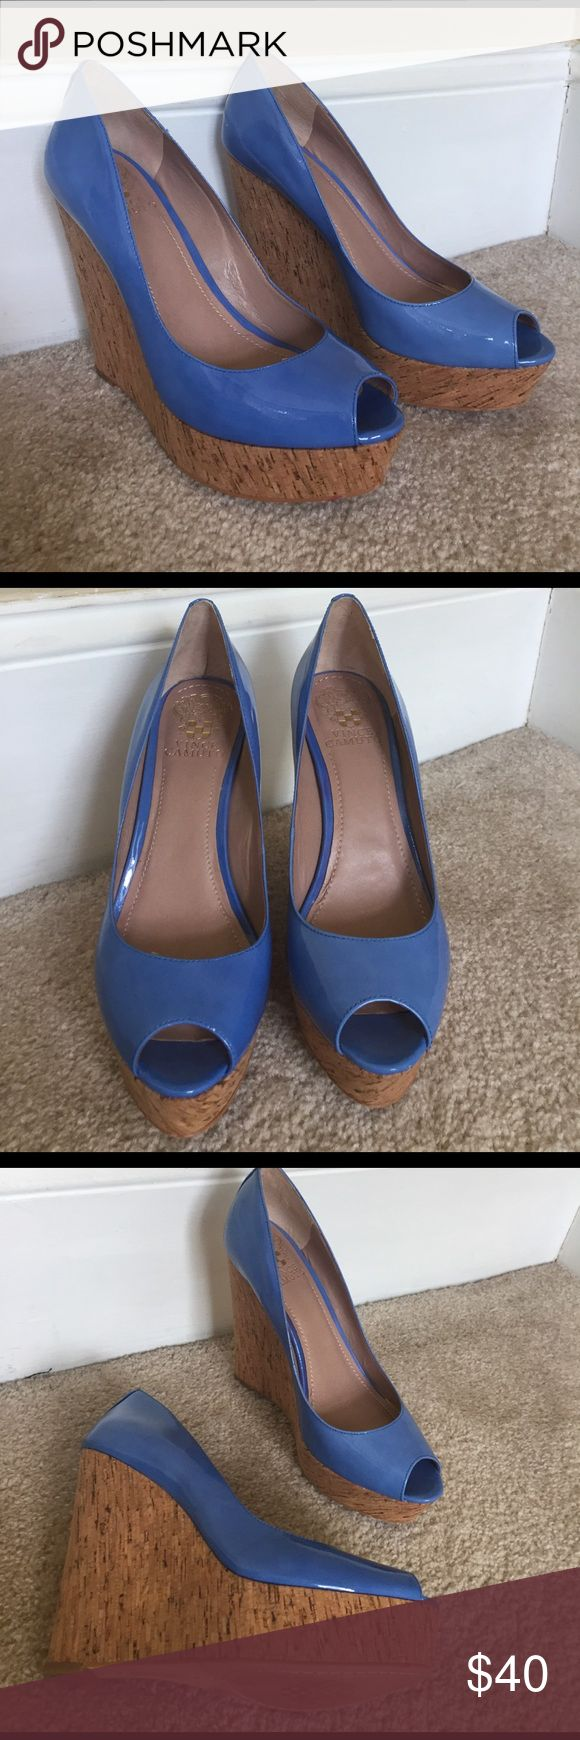 Vince Camuto Patent Blue Cork Wedges Stunning patent blue with a cork wedge. No wear to the sole. Very lightly worn so hardly any wear shown on bottoms. Perfect for your summer dresses! Vince Camuto Shoes Wedges